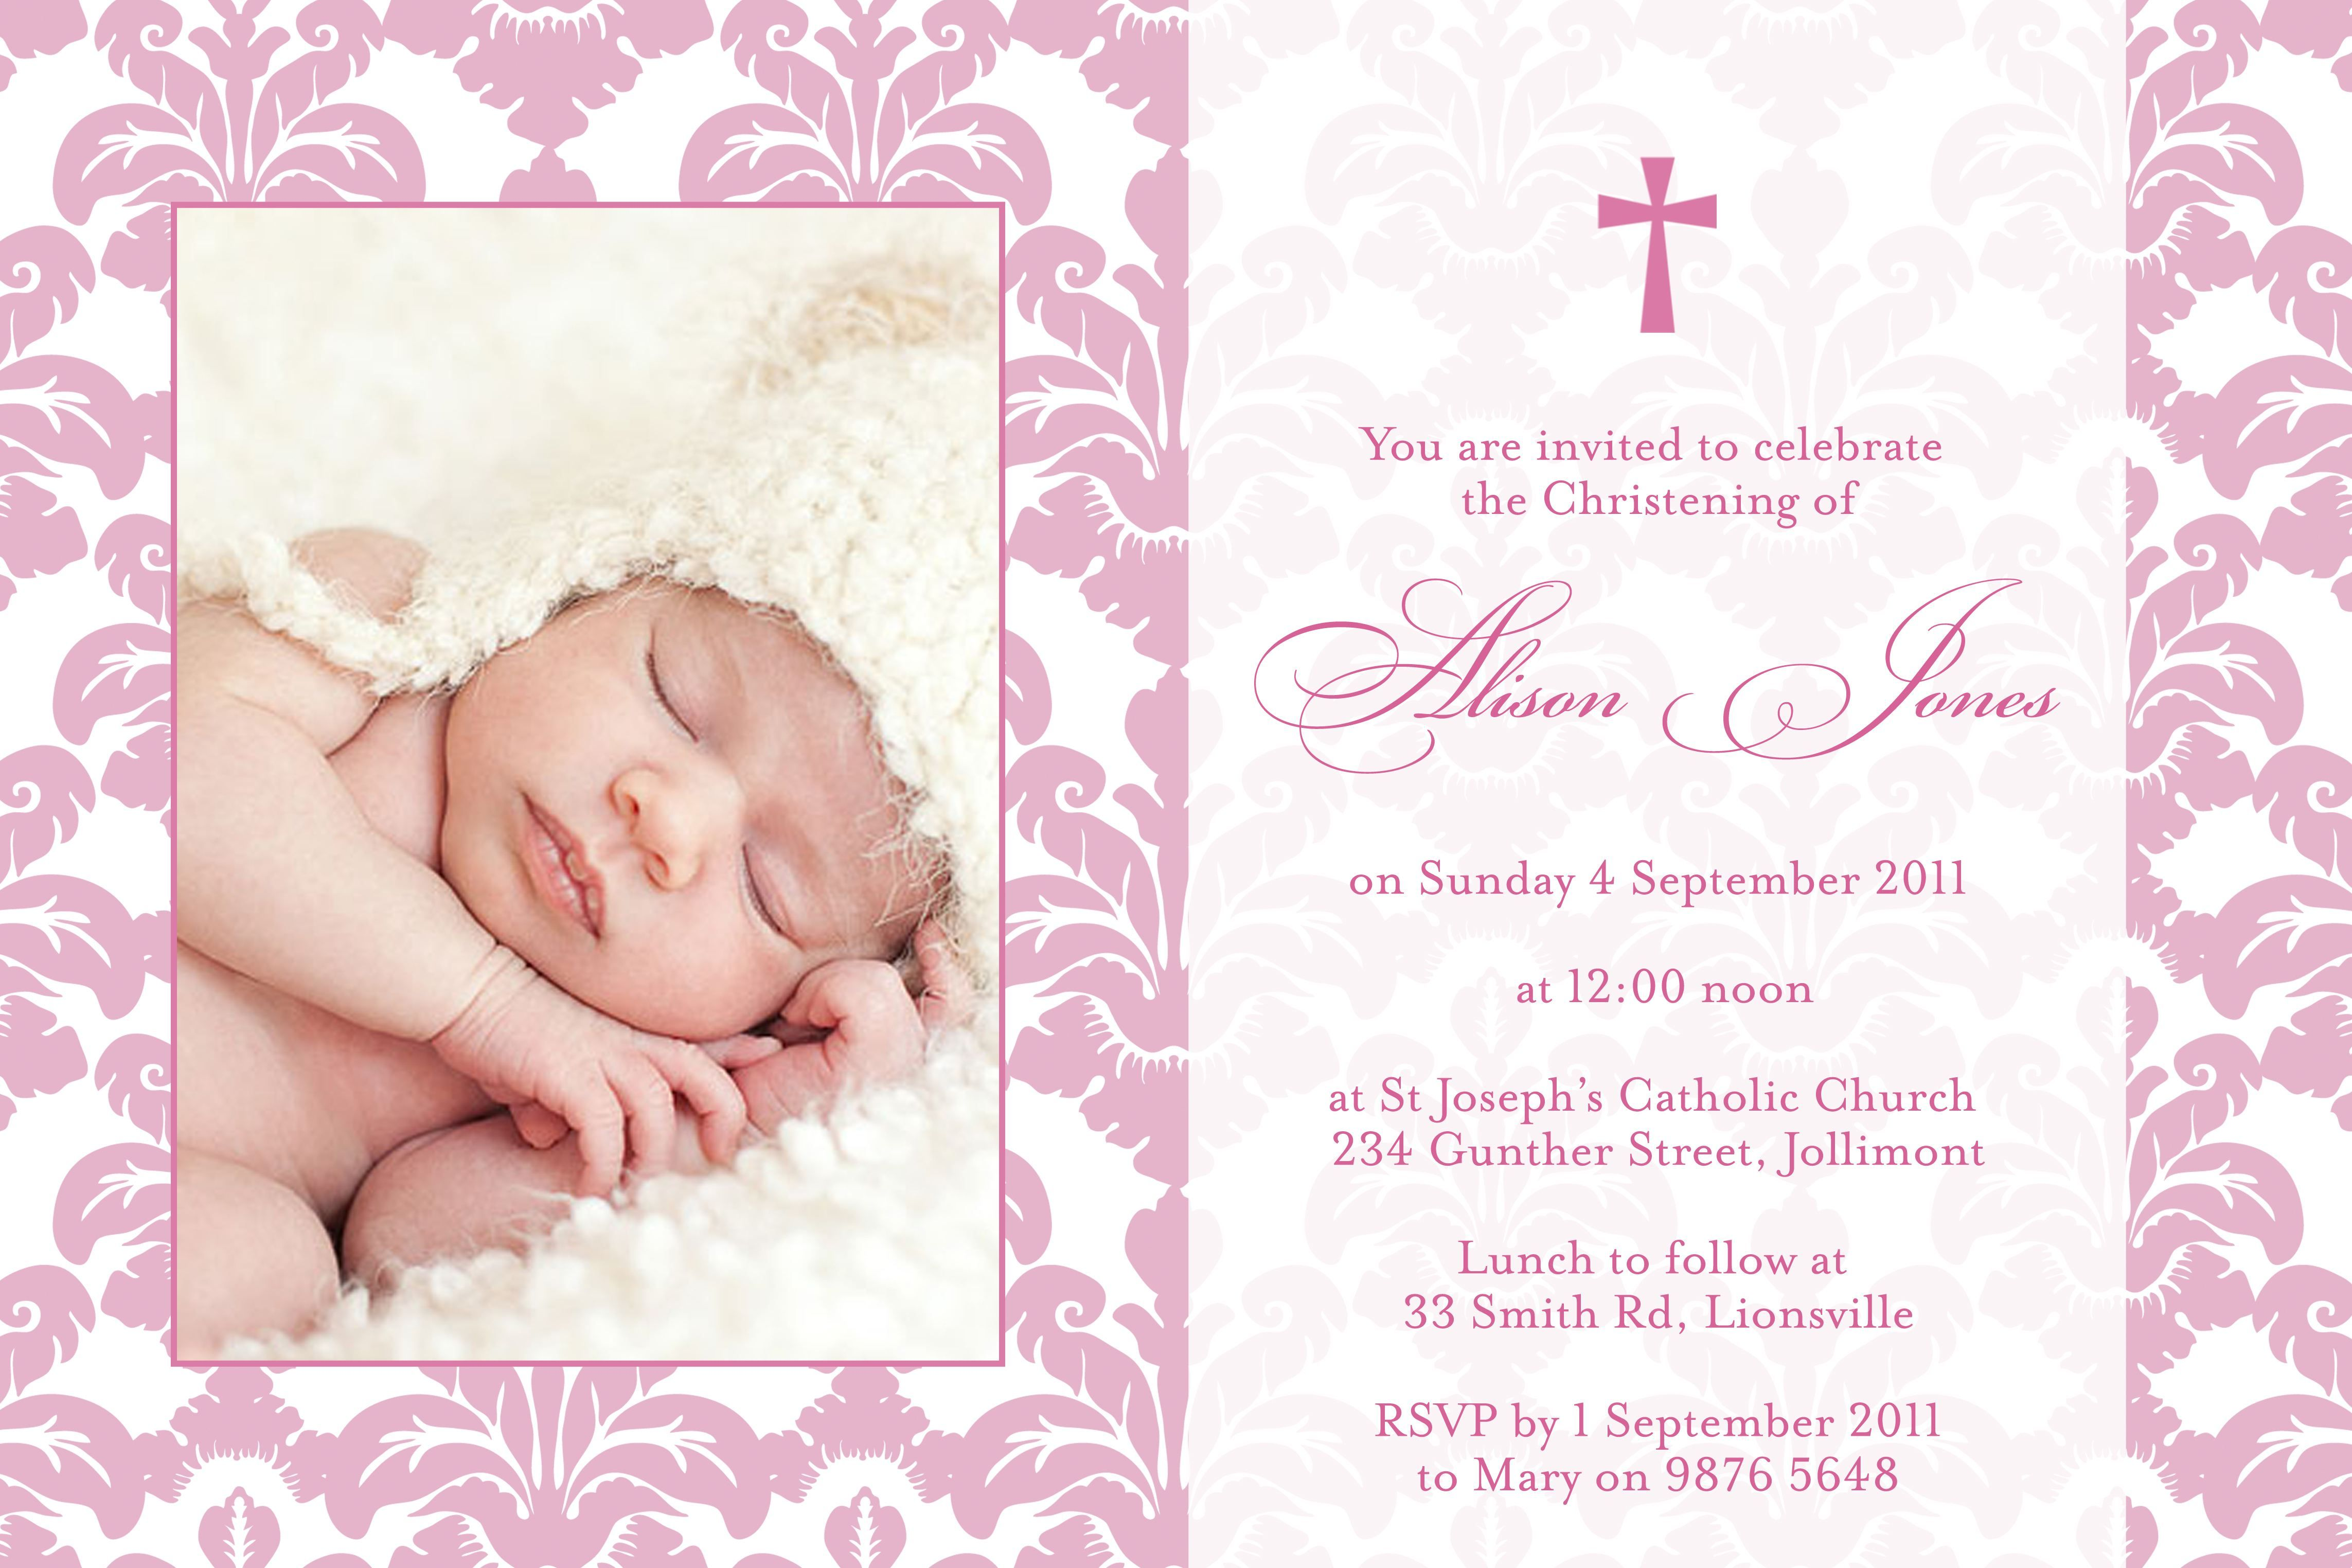 Baptism invitation wording samples baptism invitations pinterest baptism invitation wording samples stopboris Images